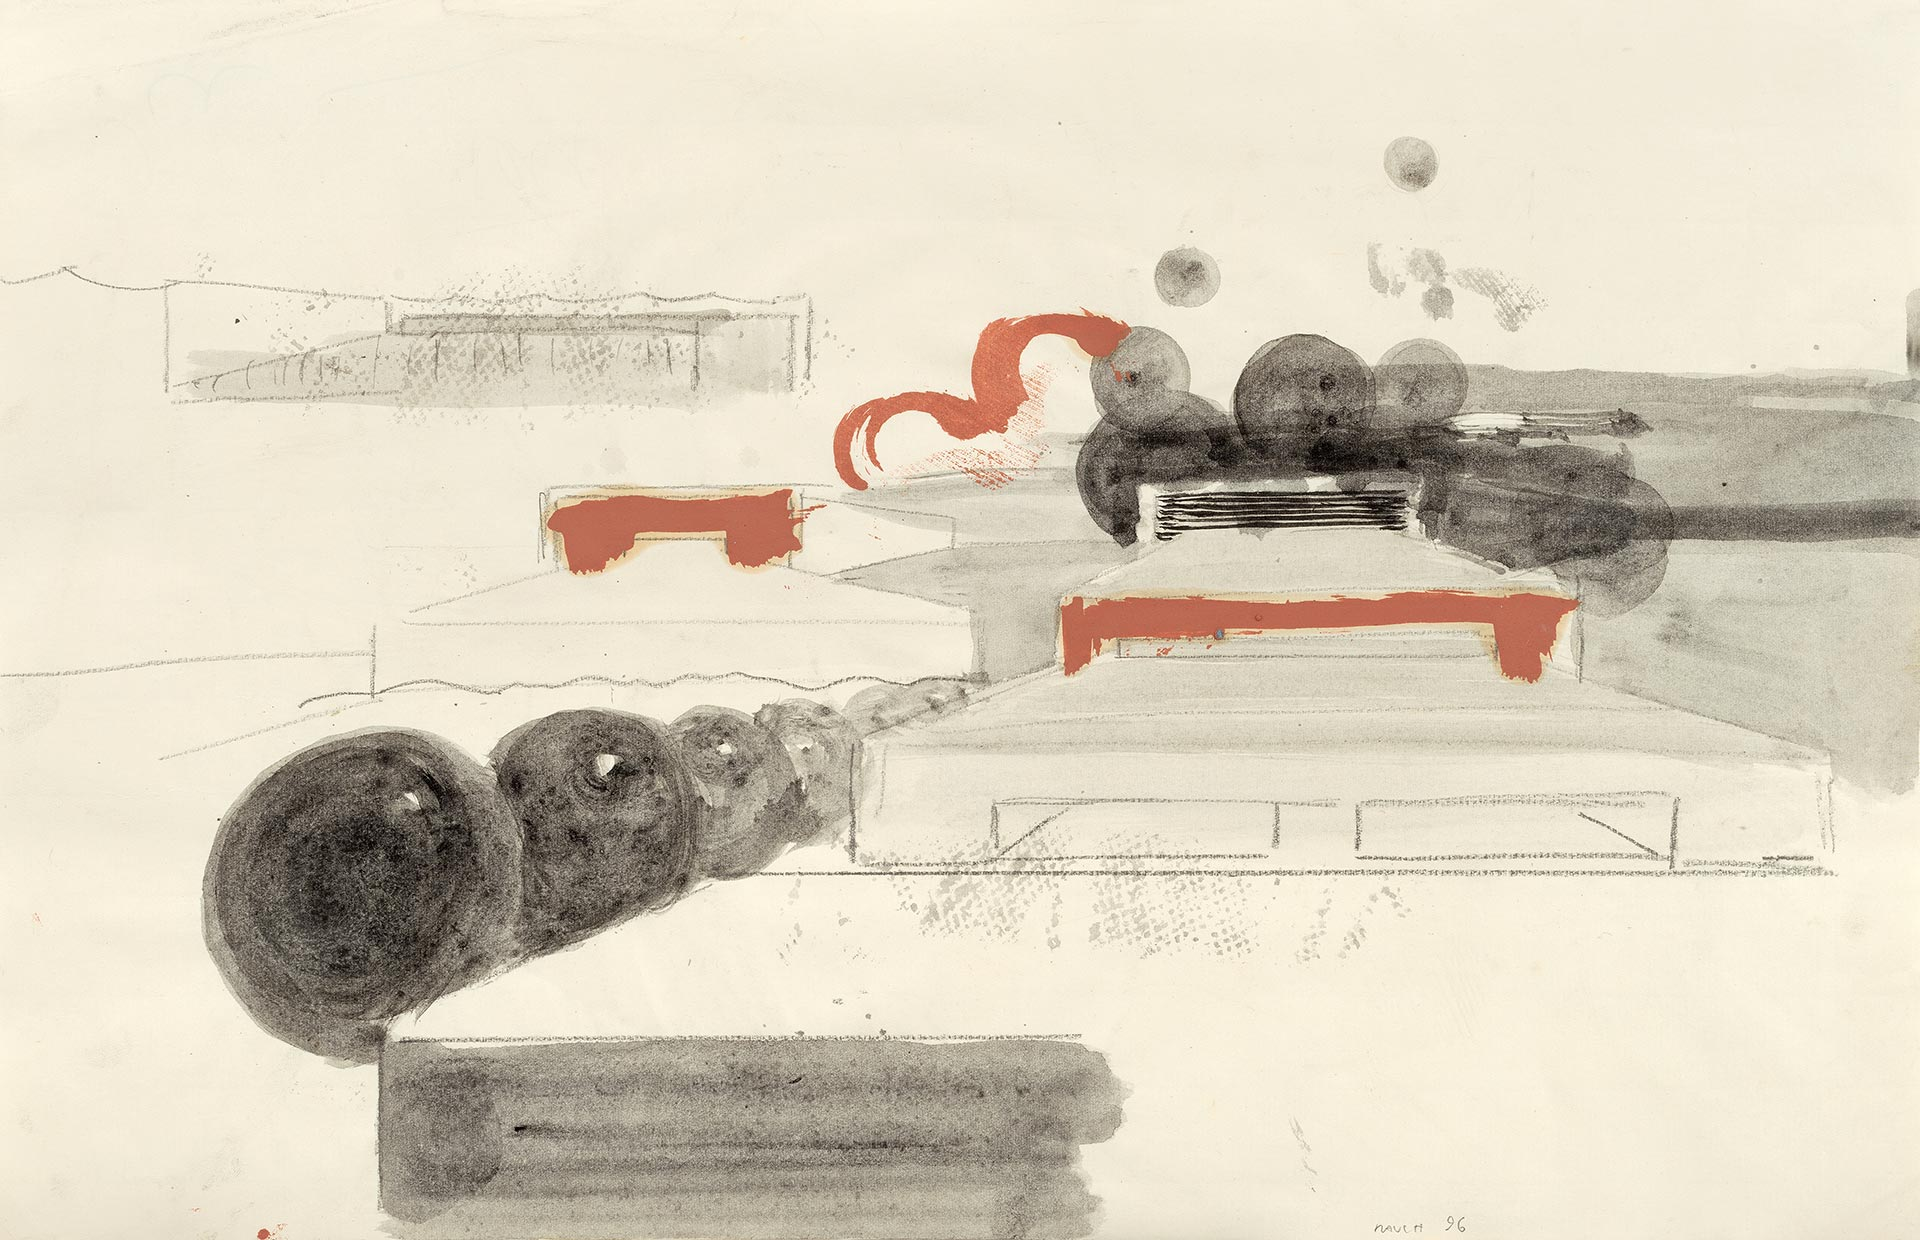 A drawing by Neo Rauch, titled Neo Rauch, Hauptquartier, dated 1996.